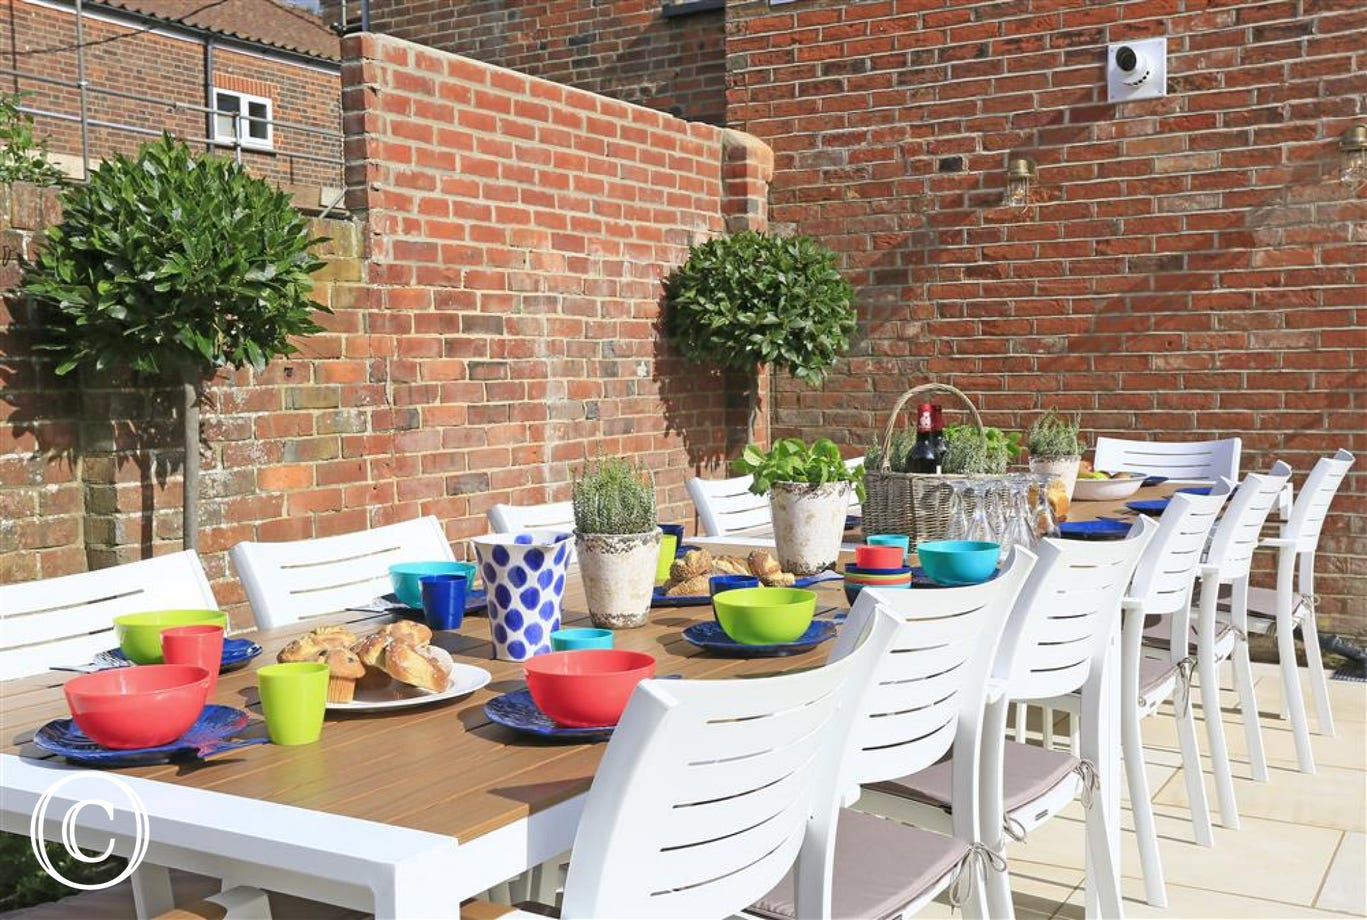 Rear Courtyard with Garden Furniture - View 2